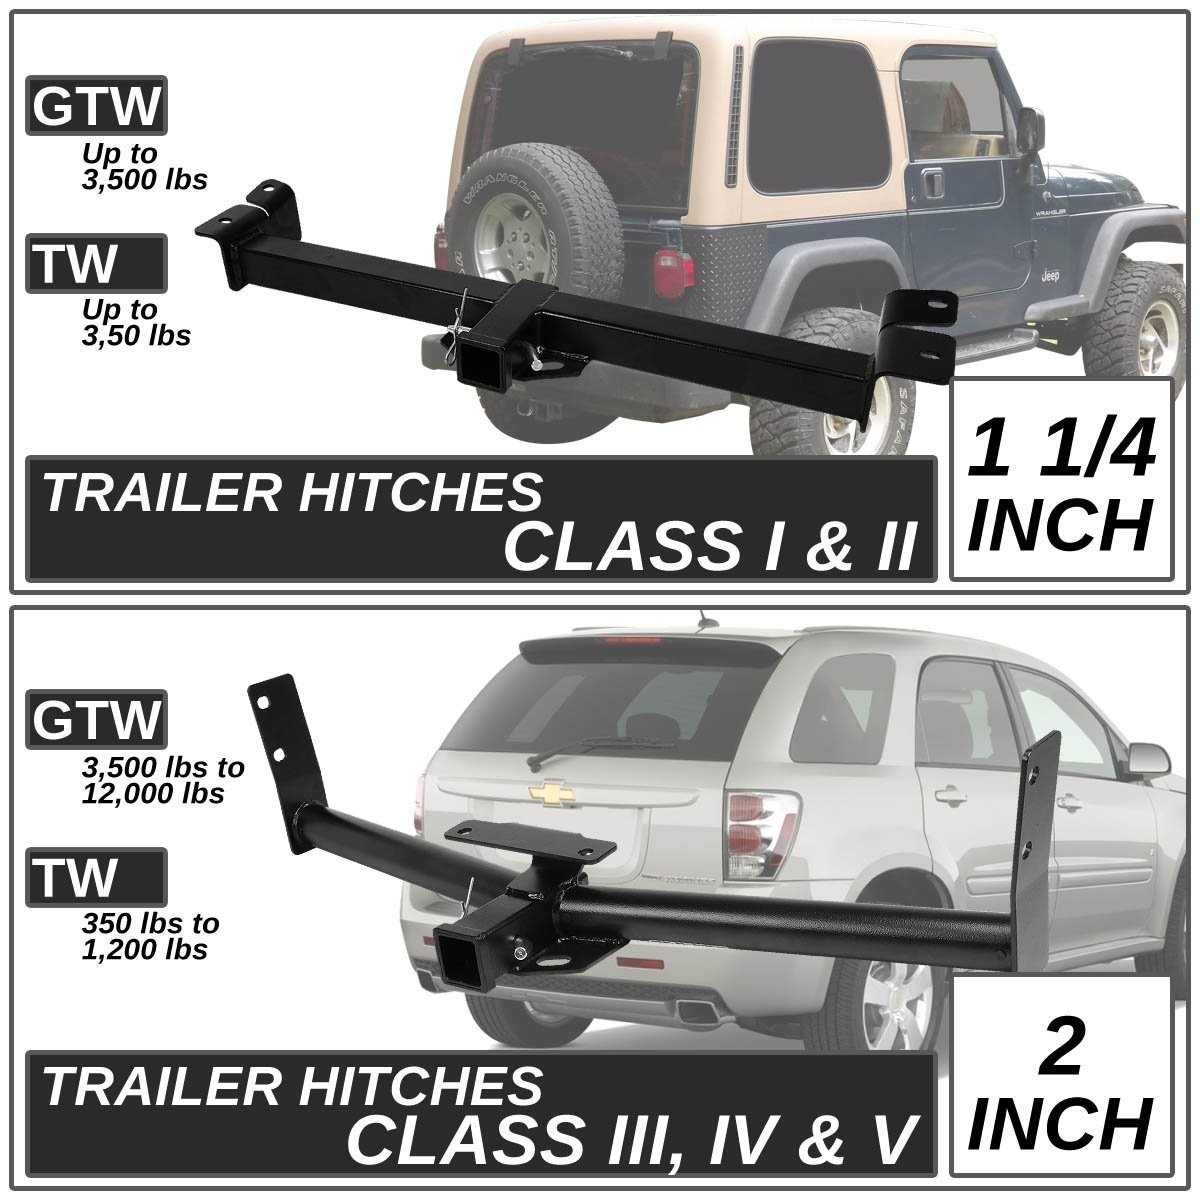 96 07 Dodge Caravan Chrysler Town Country Class Iii Trailer Hitch 1996 Jeep Grand Cherokee Tow Wiring Harness Receiver Rear Kit